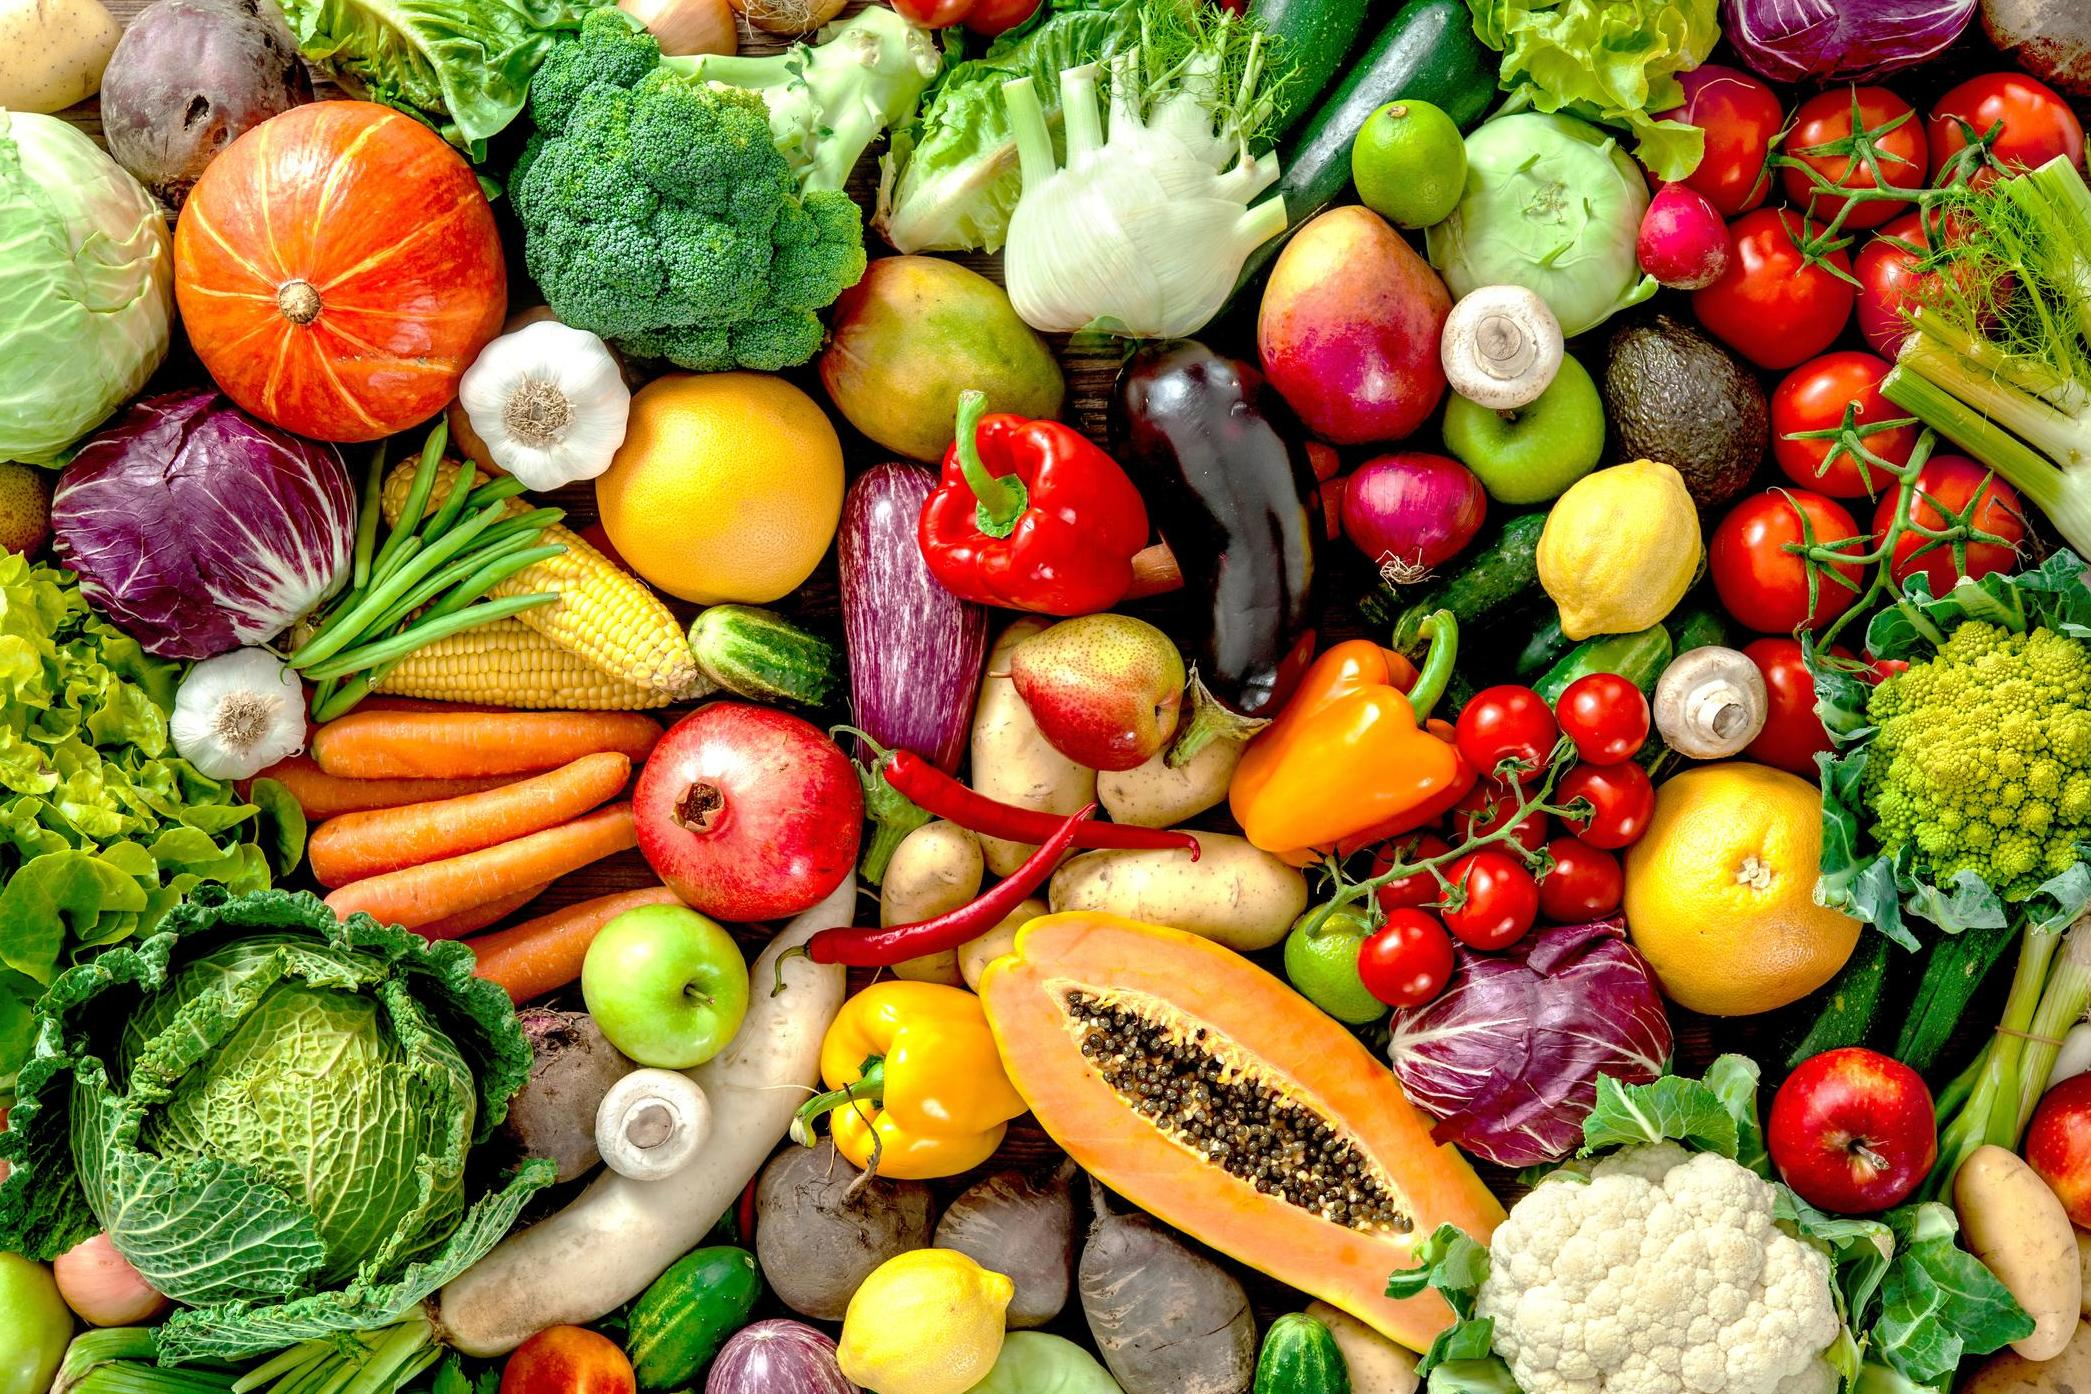 vegetables healthy fruit vegetable raw fruits health eating independent better